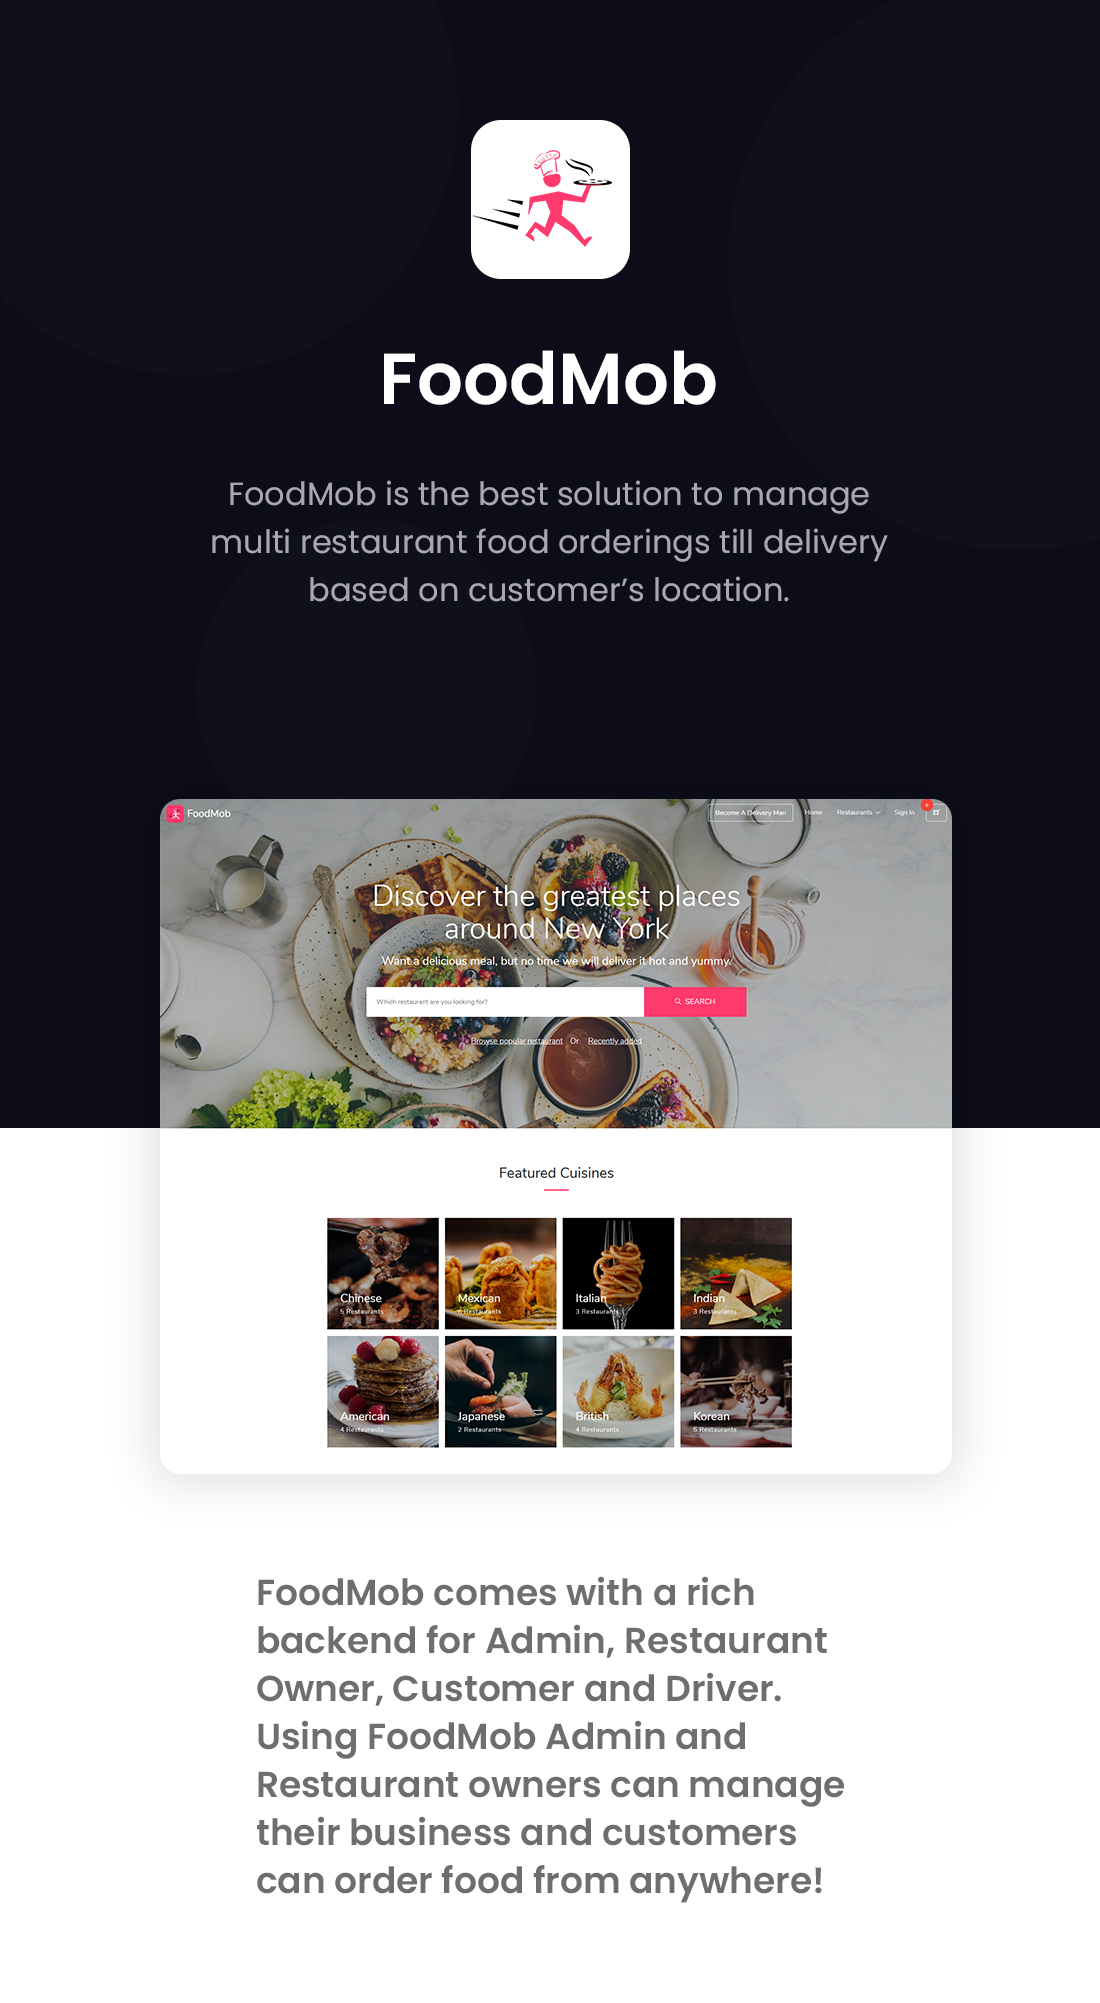 FoodMob - An Online Multi Restaurant Food Ordering and Management with Delivery System - 1